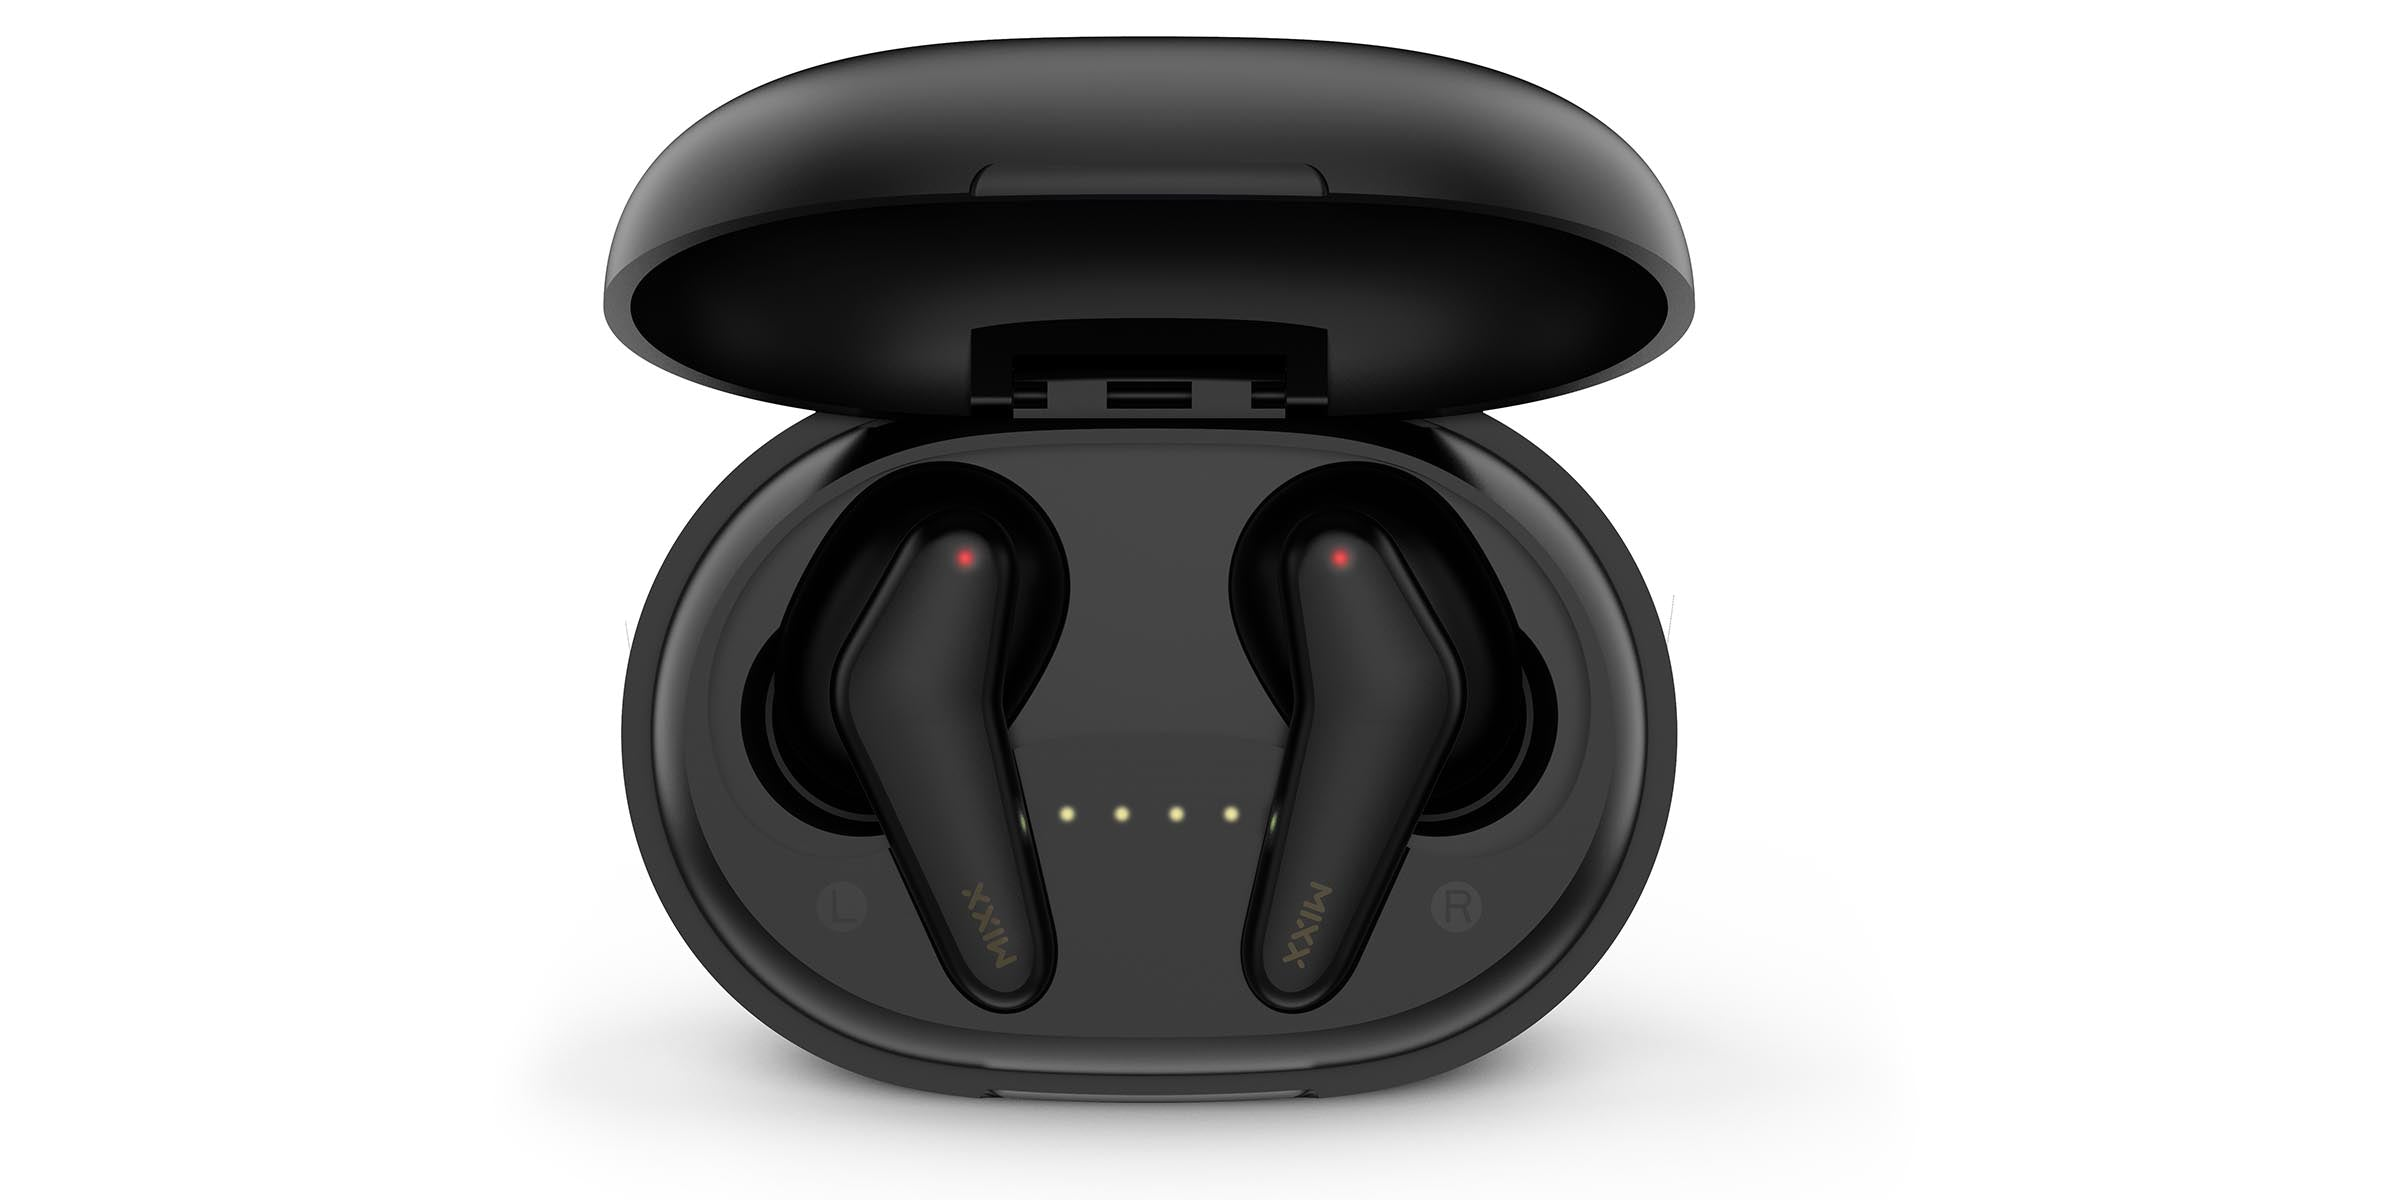 StreamBuds Nano true wireless earbuds in charging case